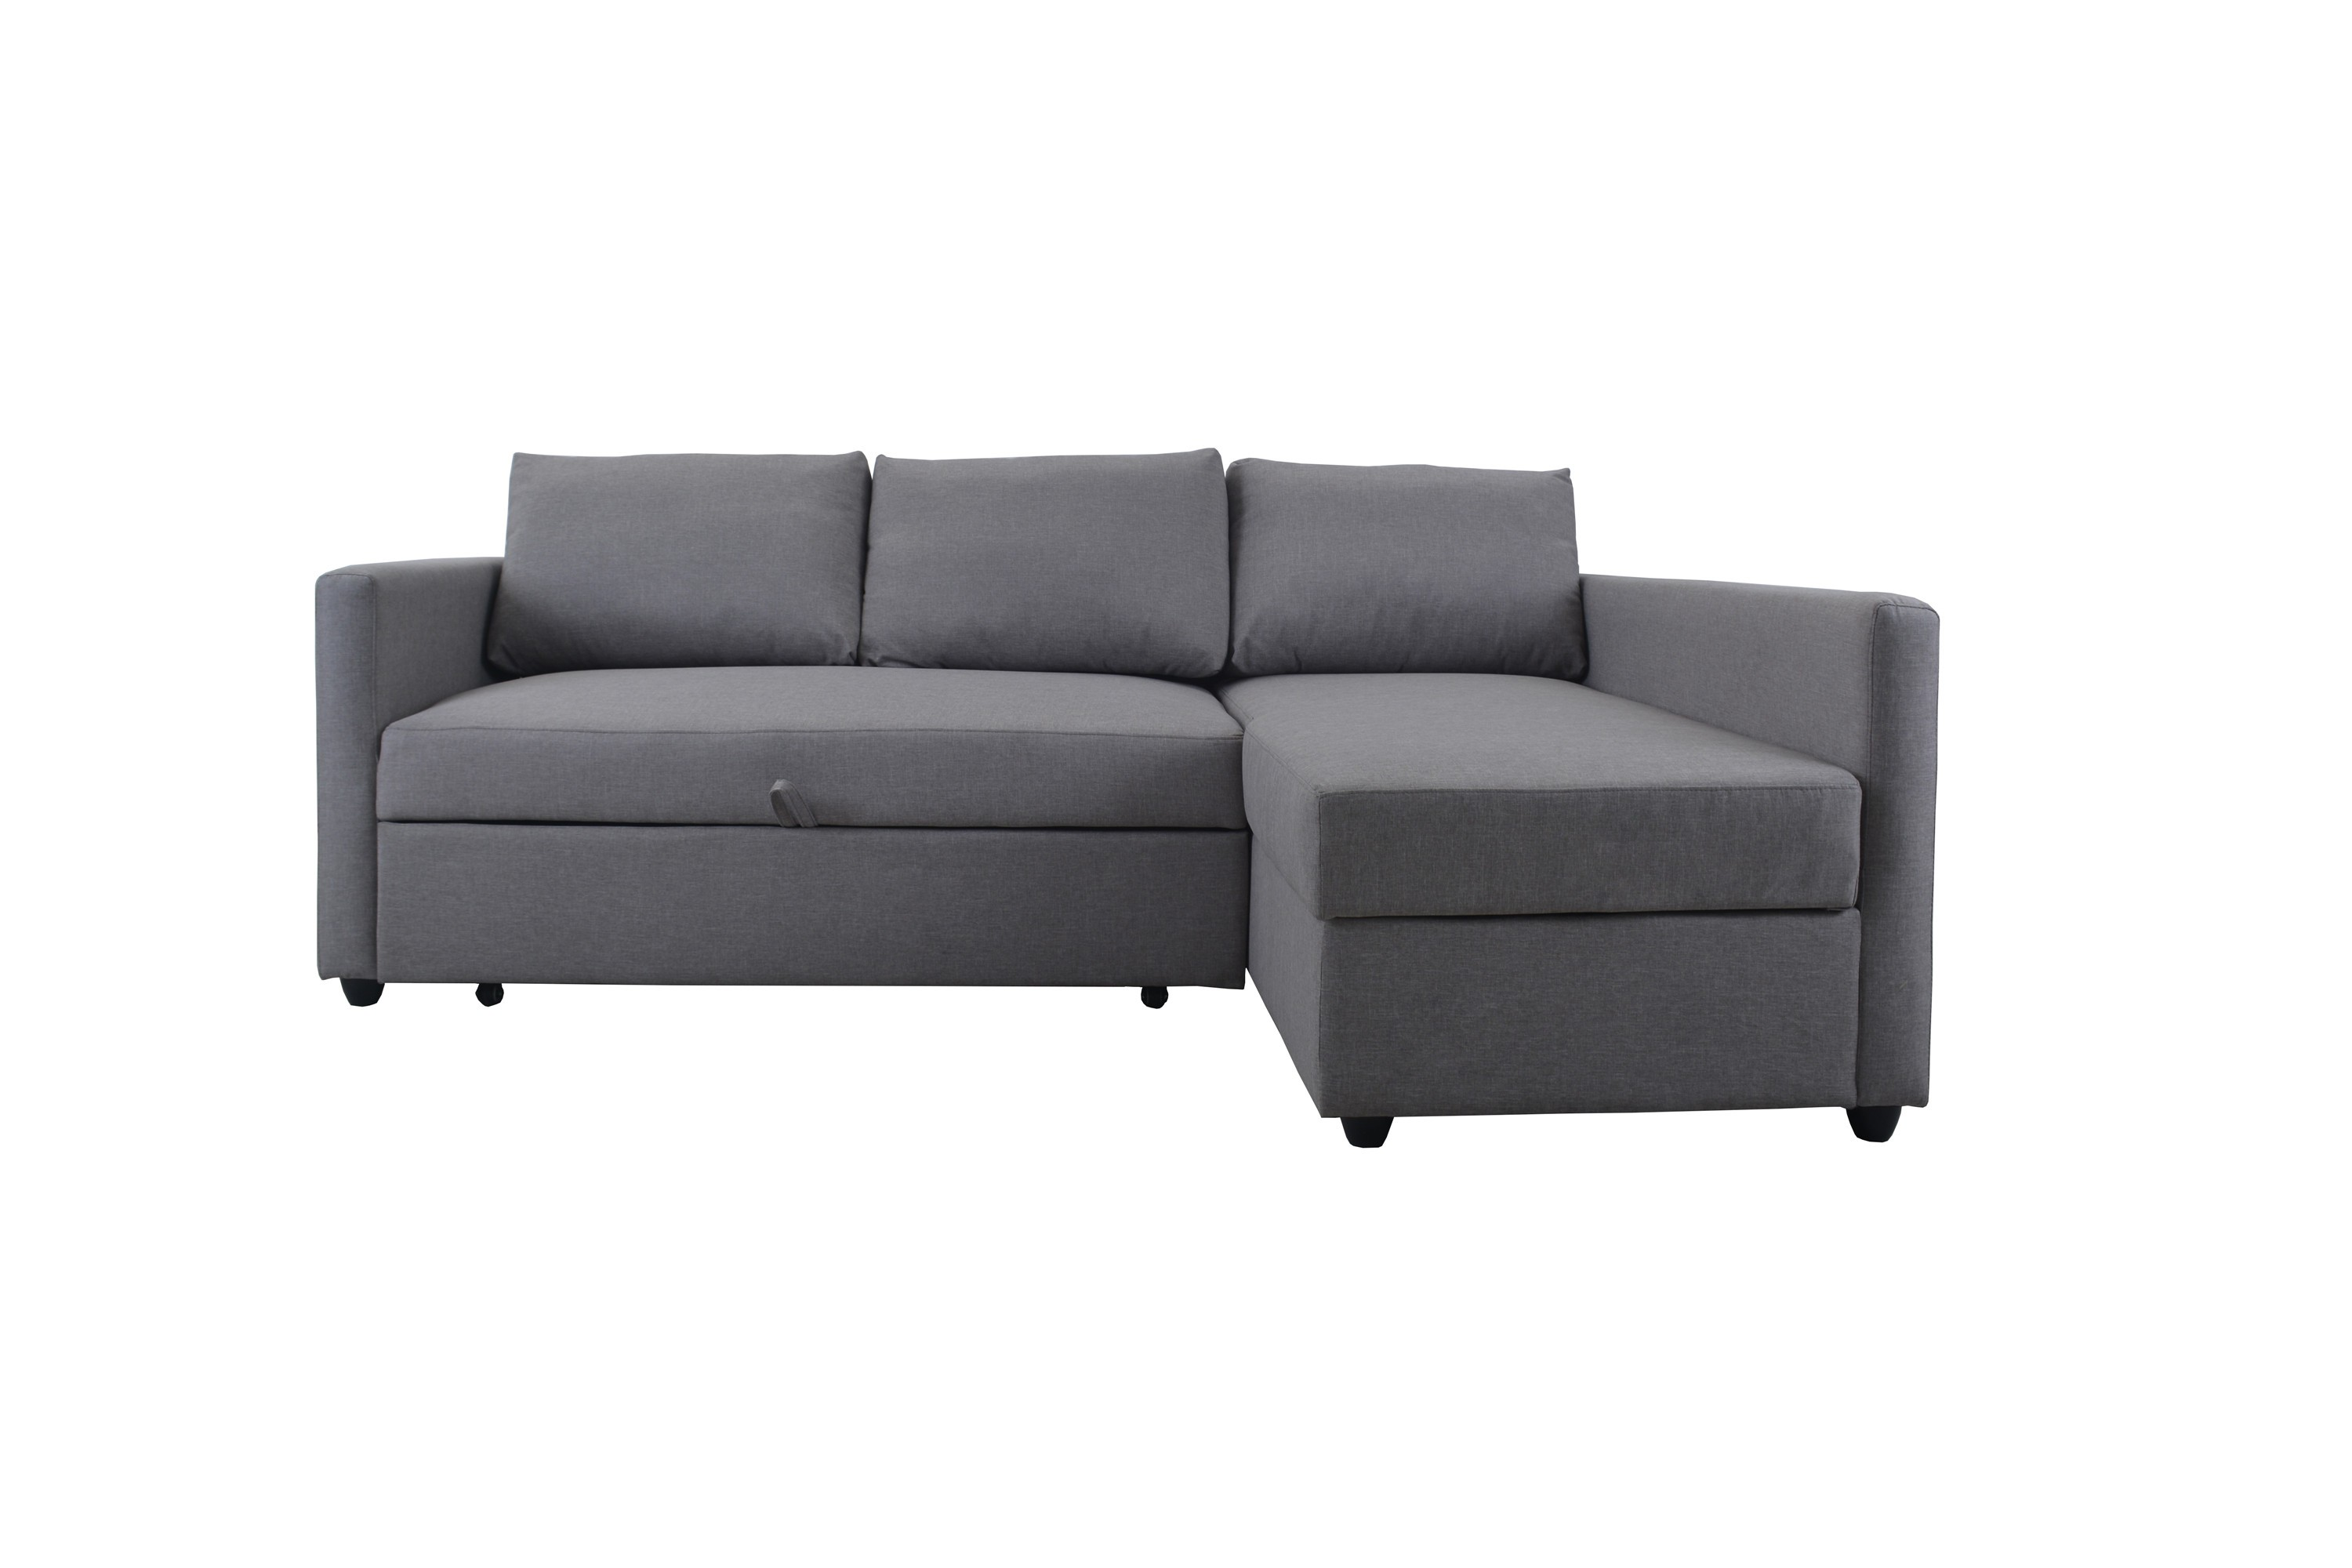 Modular 3 Seater Sofa Bed With Storage Chaise Australian